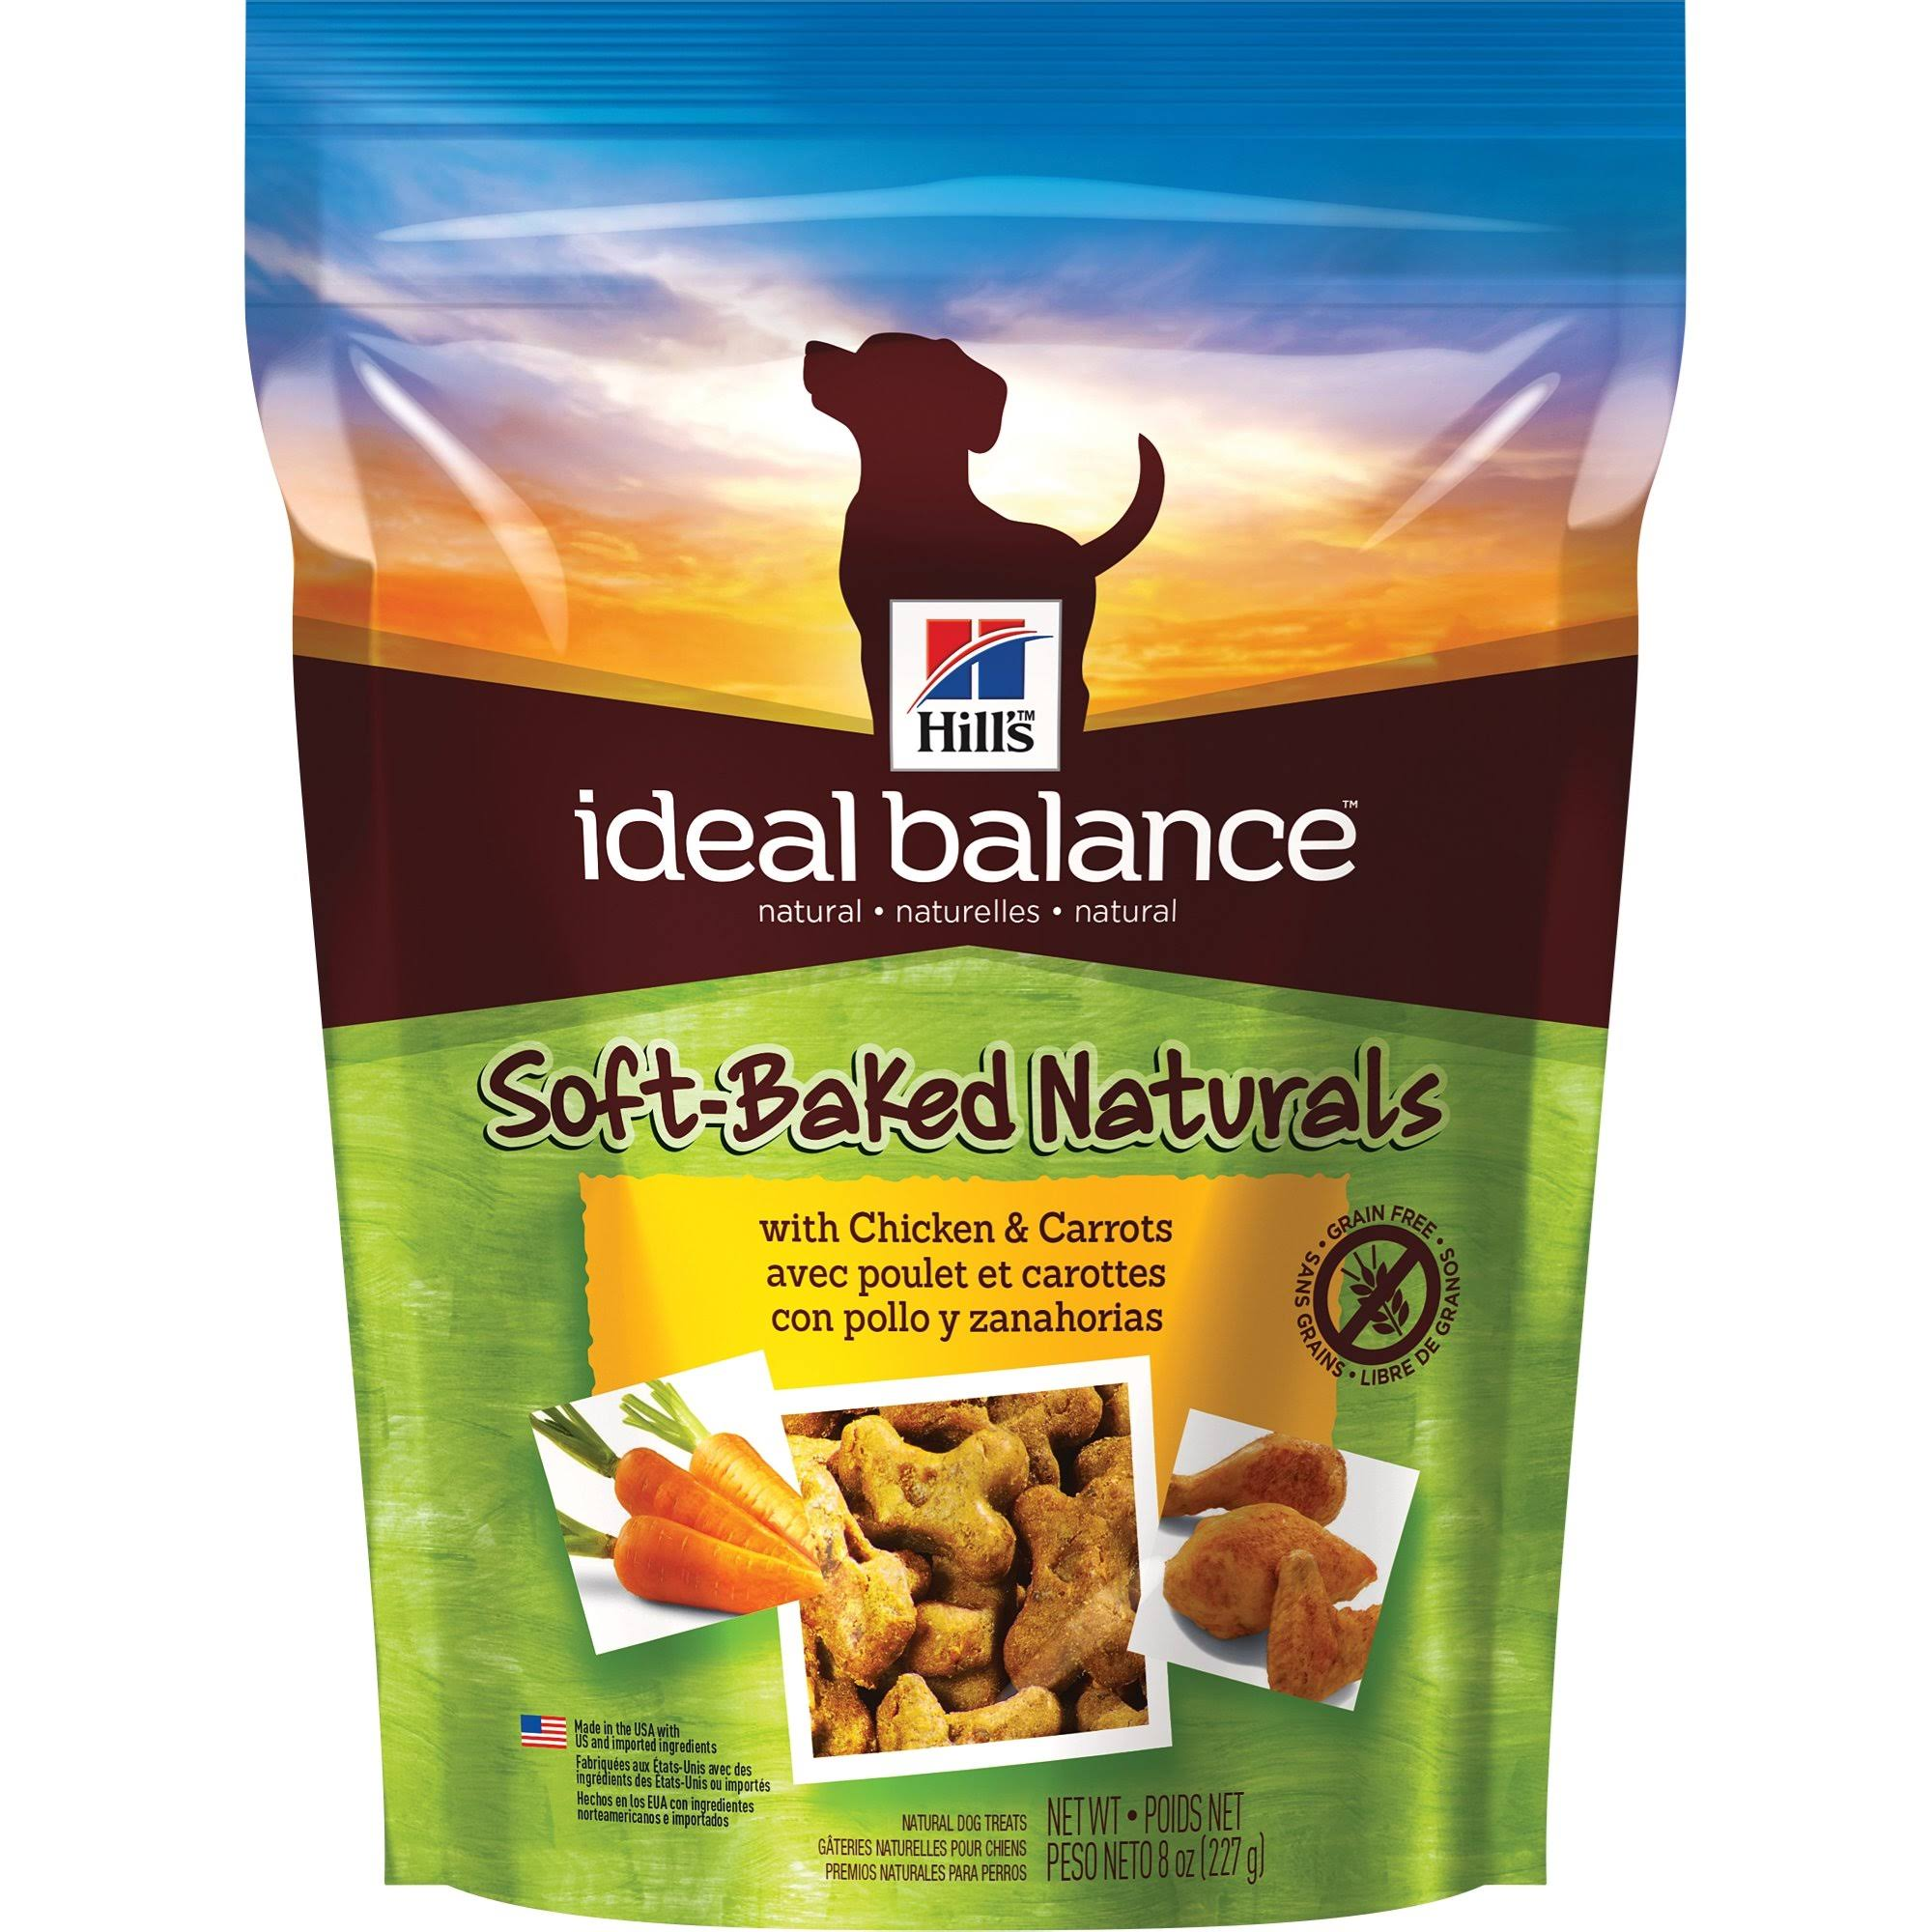 Hill's Ideal Balanced Soft-Baked Naturals with Chicken and Carrots Dog Treats - 8oz